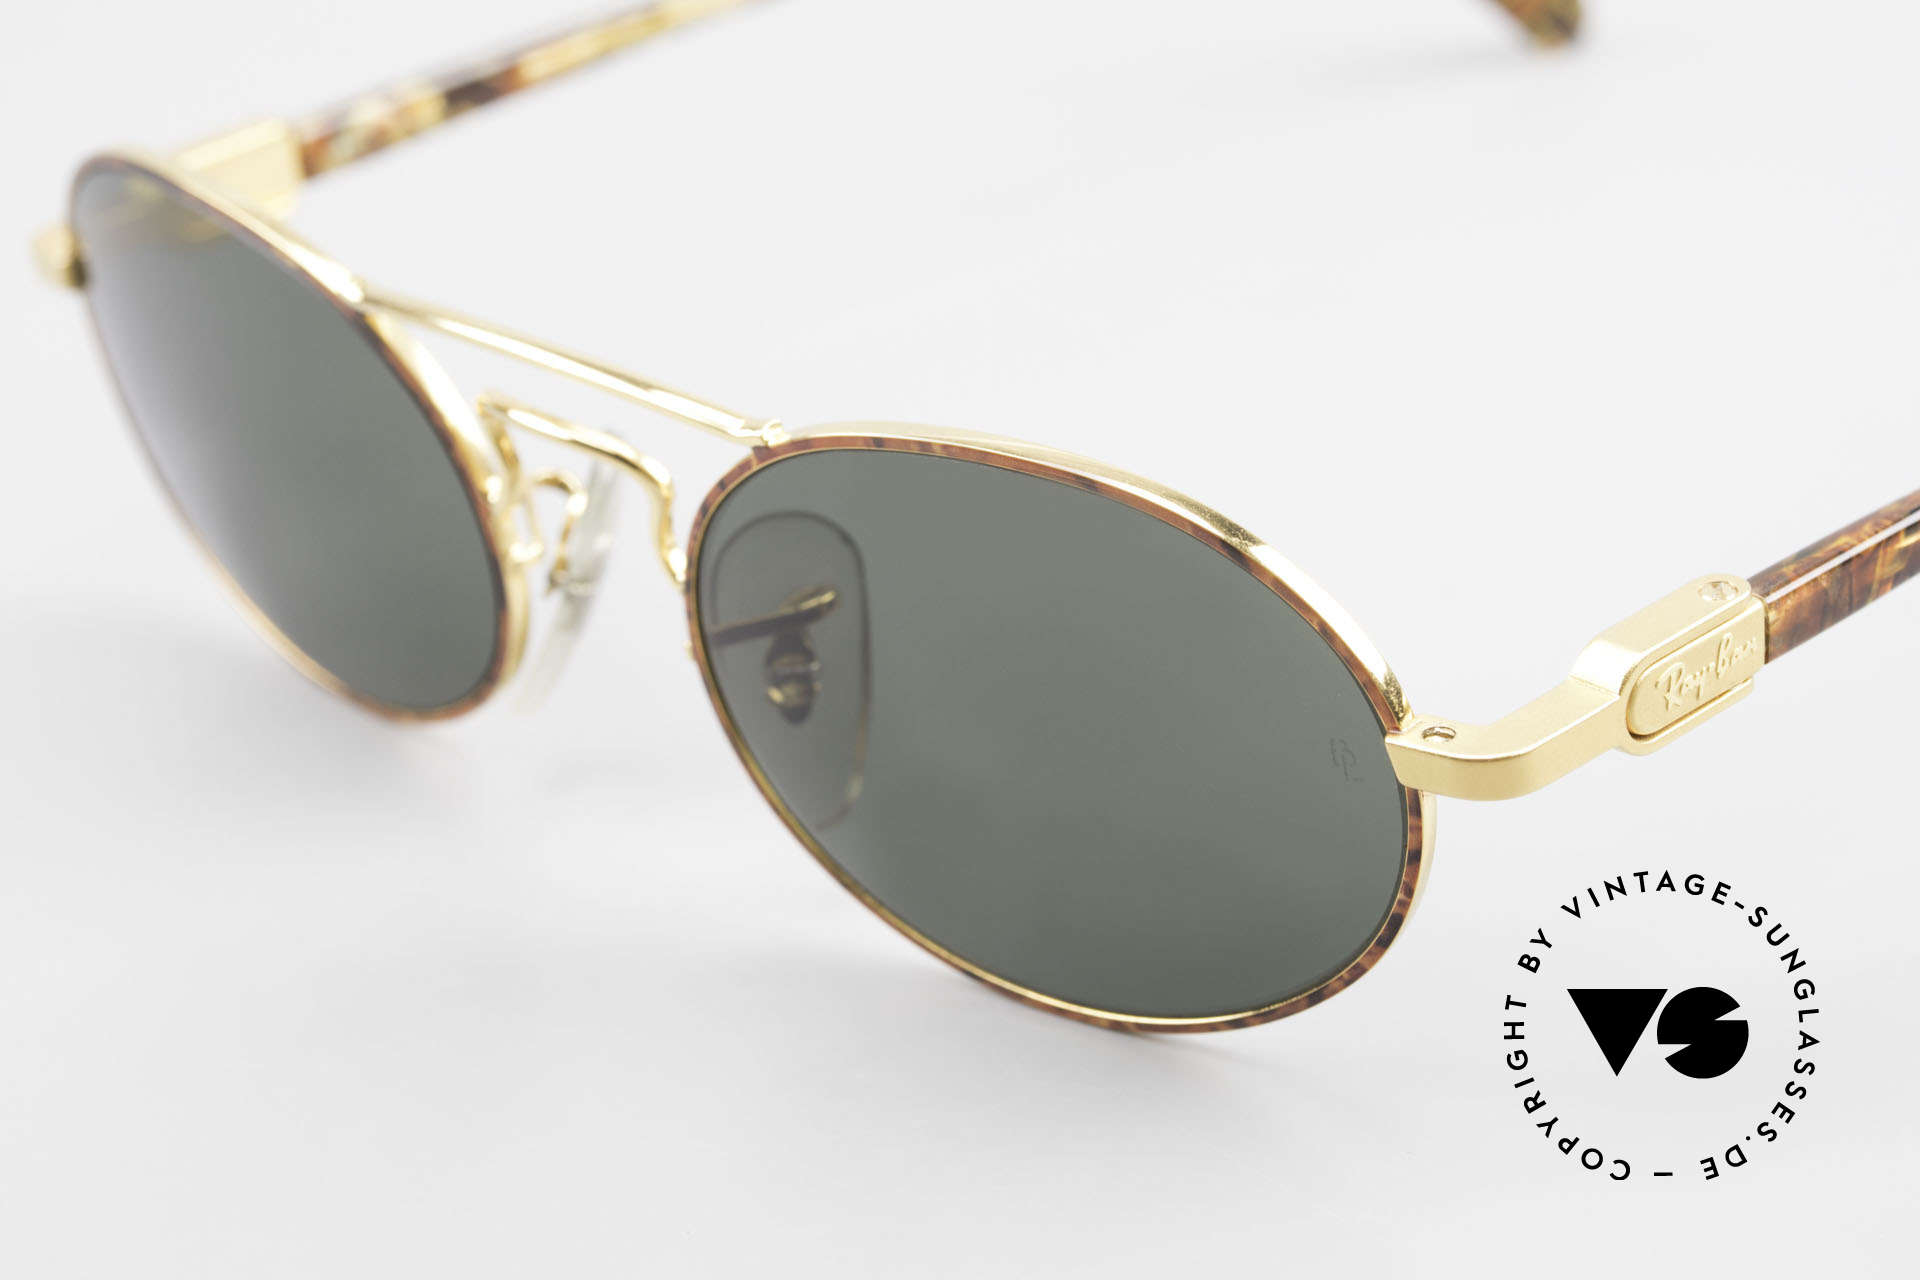 Ray Ban Chaos Oval 90's B&L USA Ray-Ban W2008, legendary mineral lenses: scratch-resistant, 100% UV, Made for Men and Women